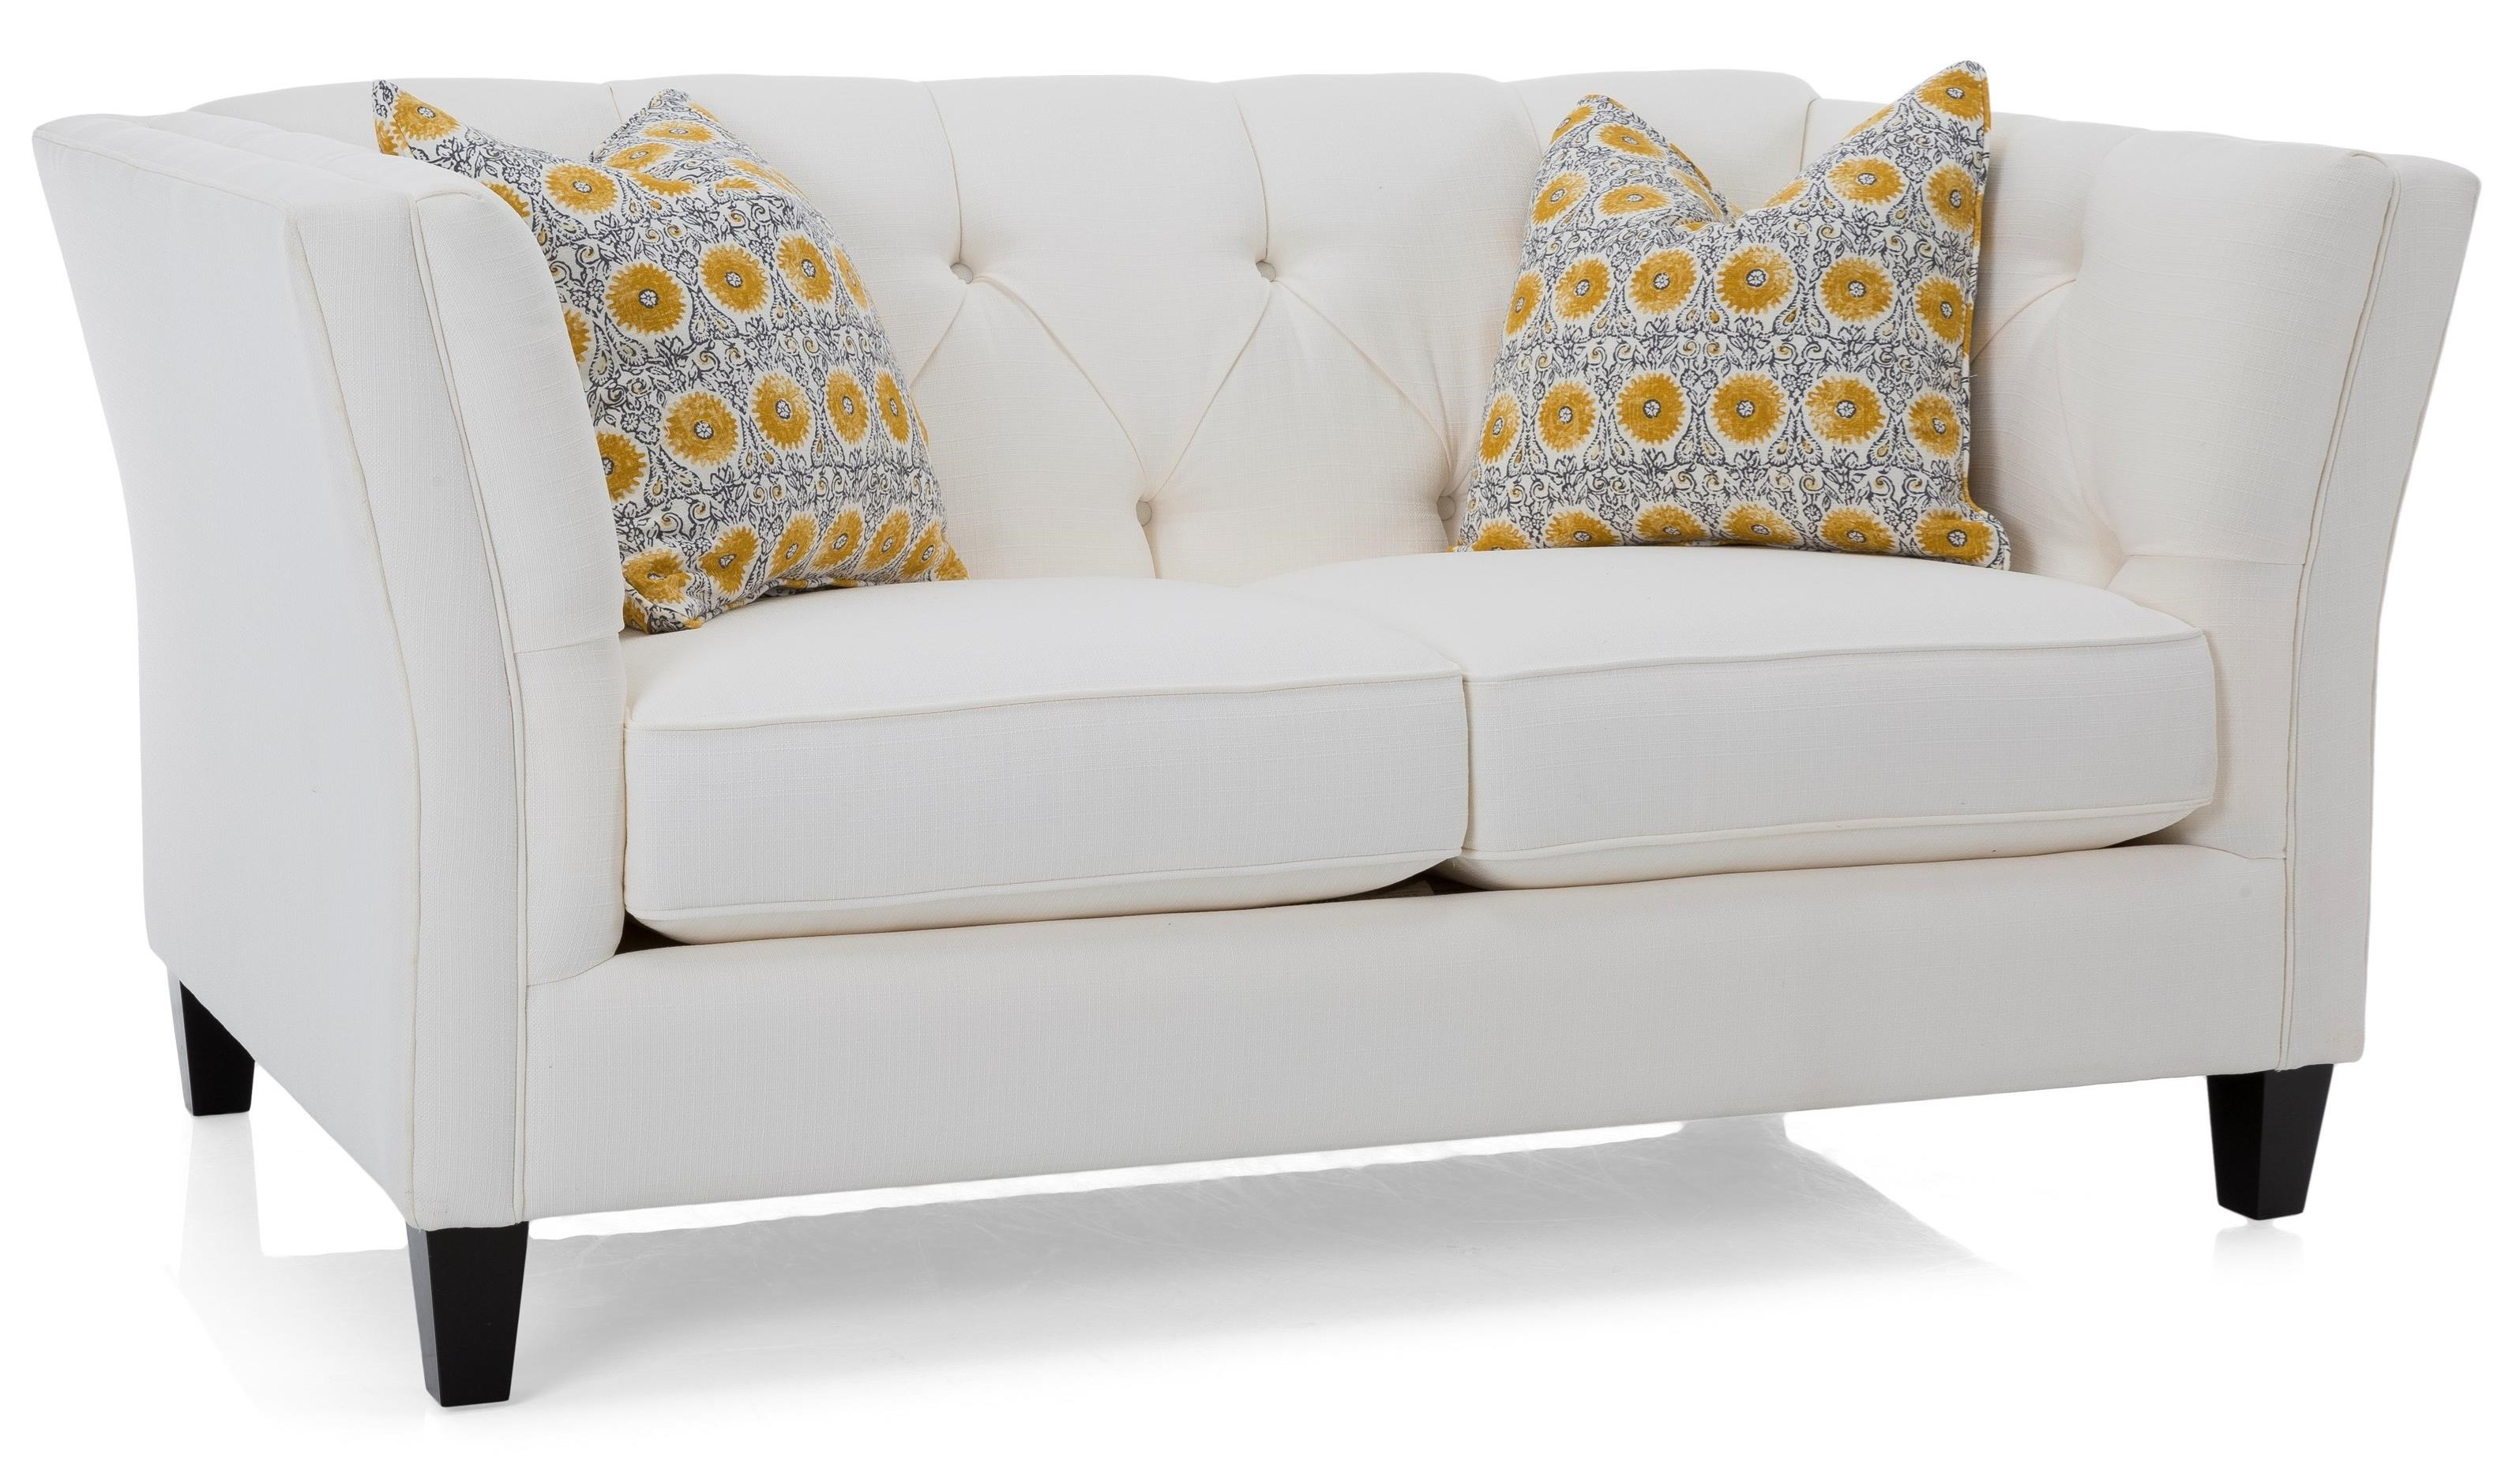 2555 Loveseat by Decor-Rest at Rooms for Less